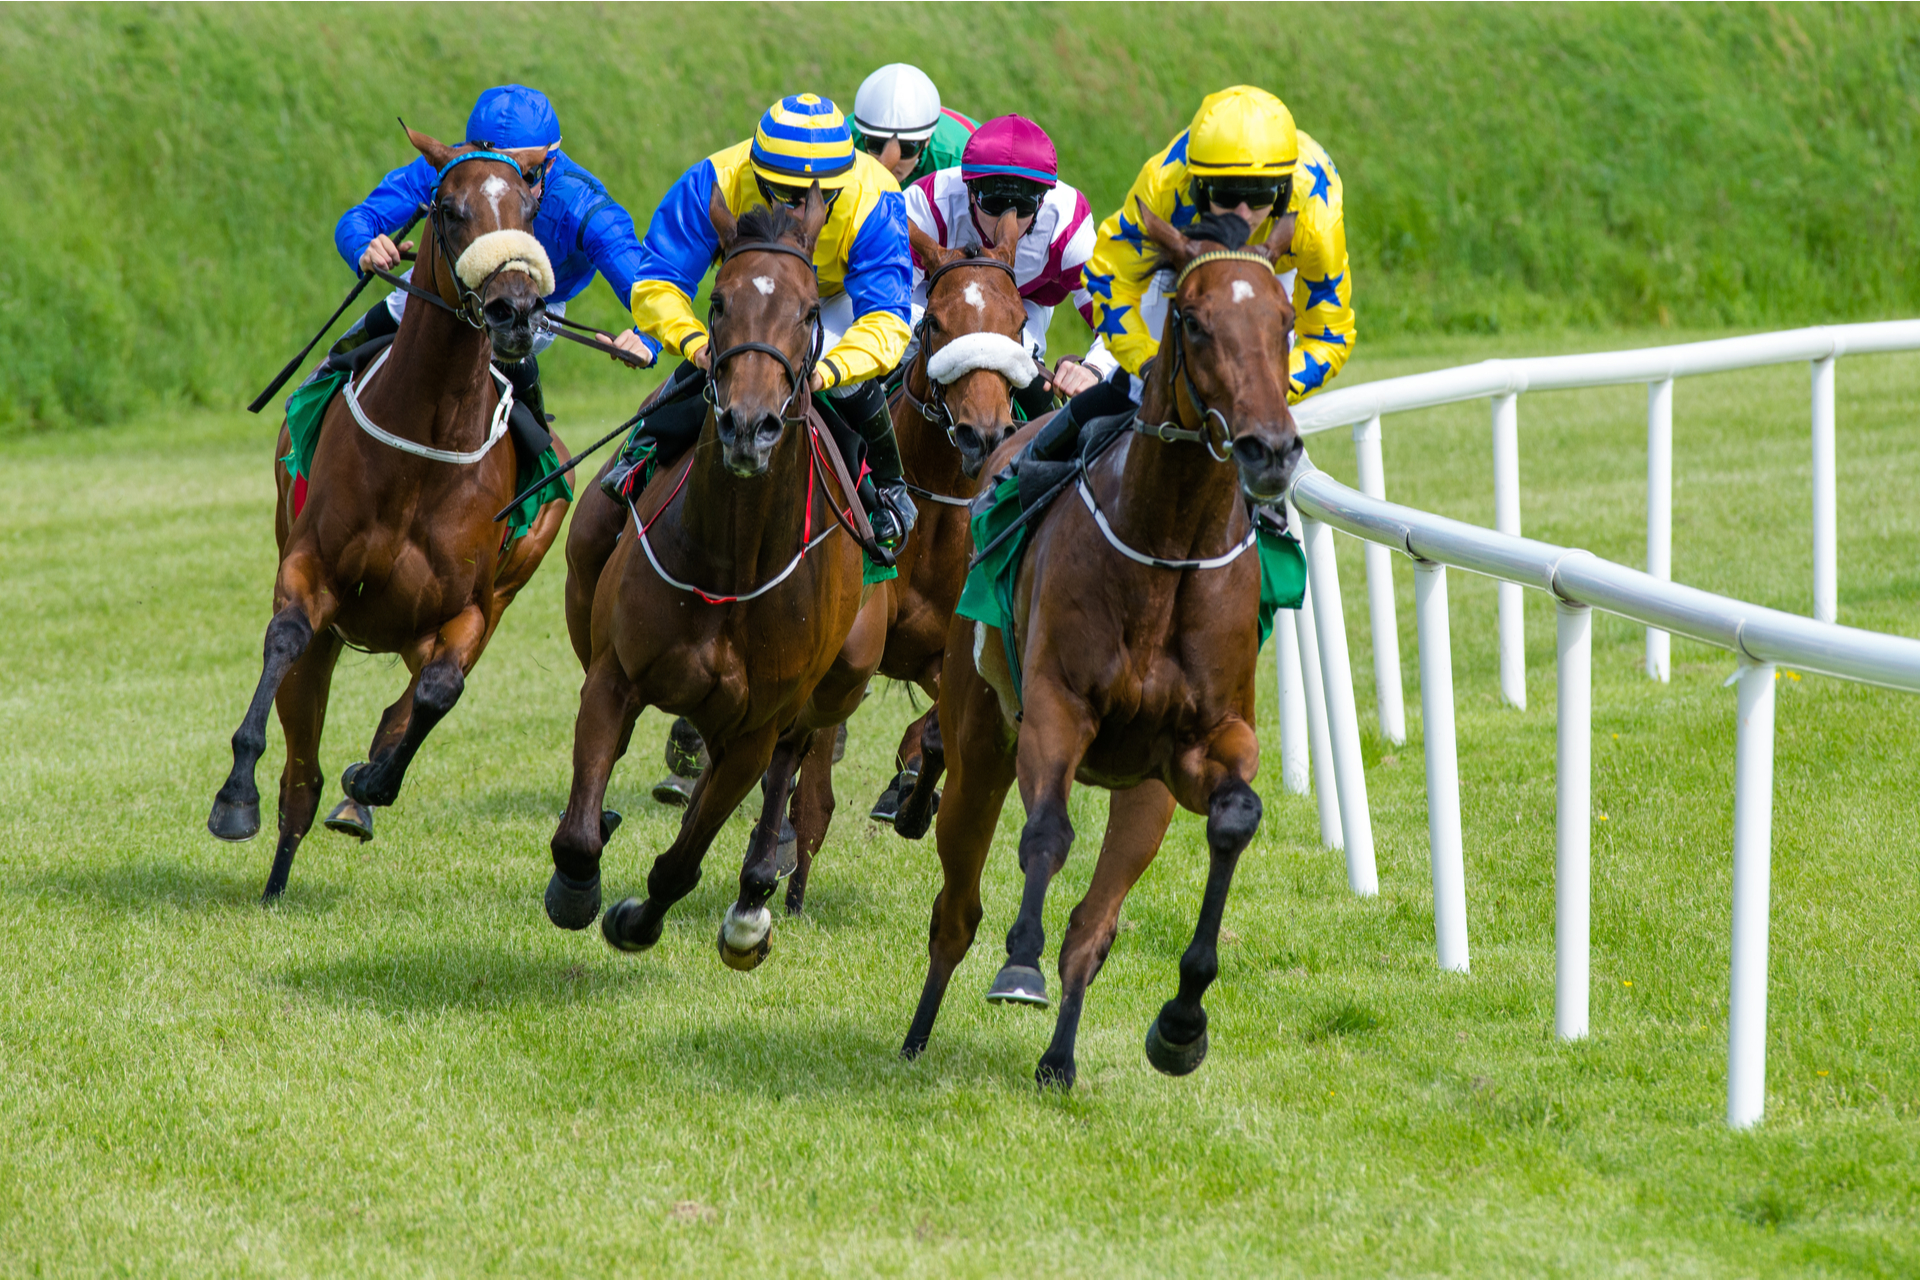 Race horses galloping in racing competition